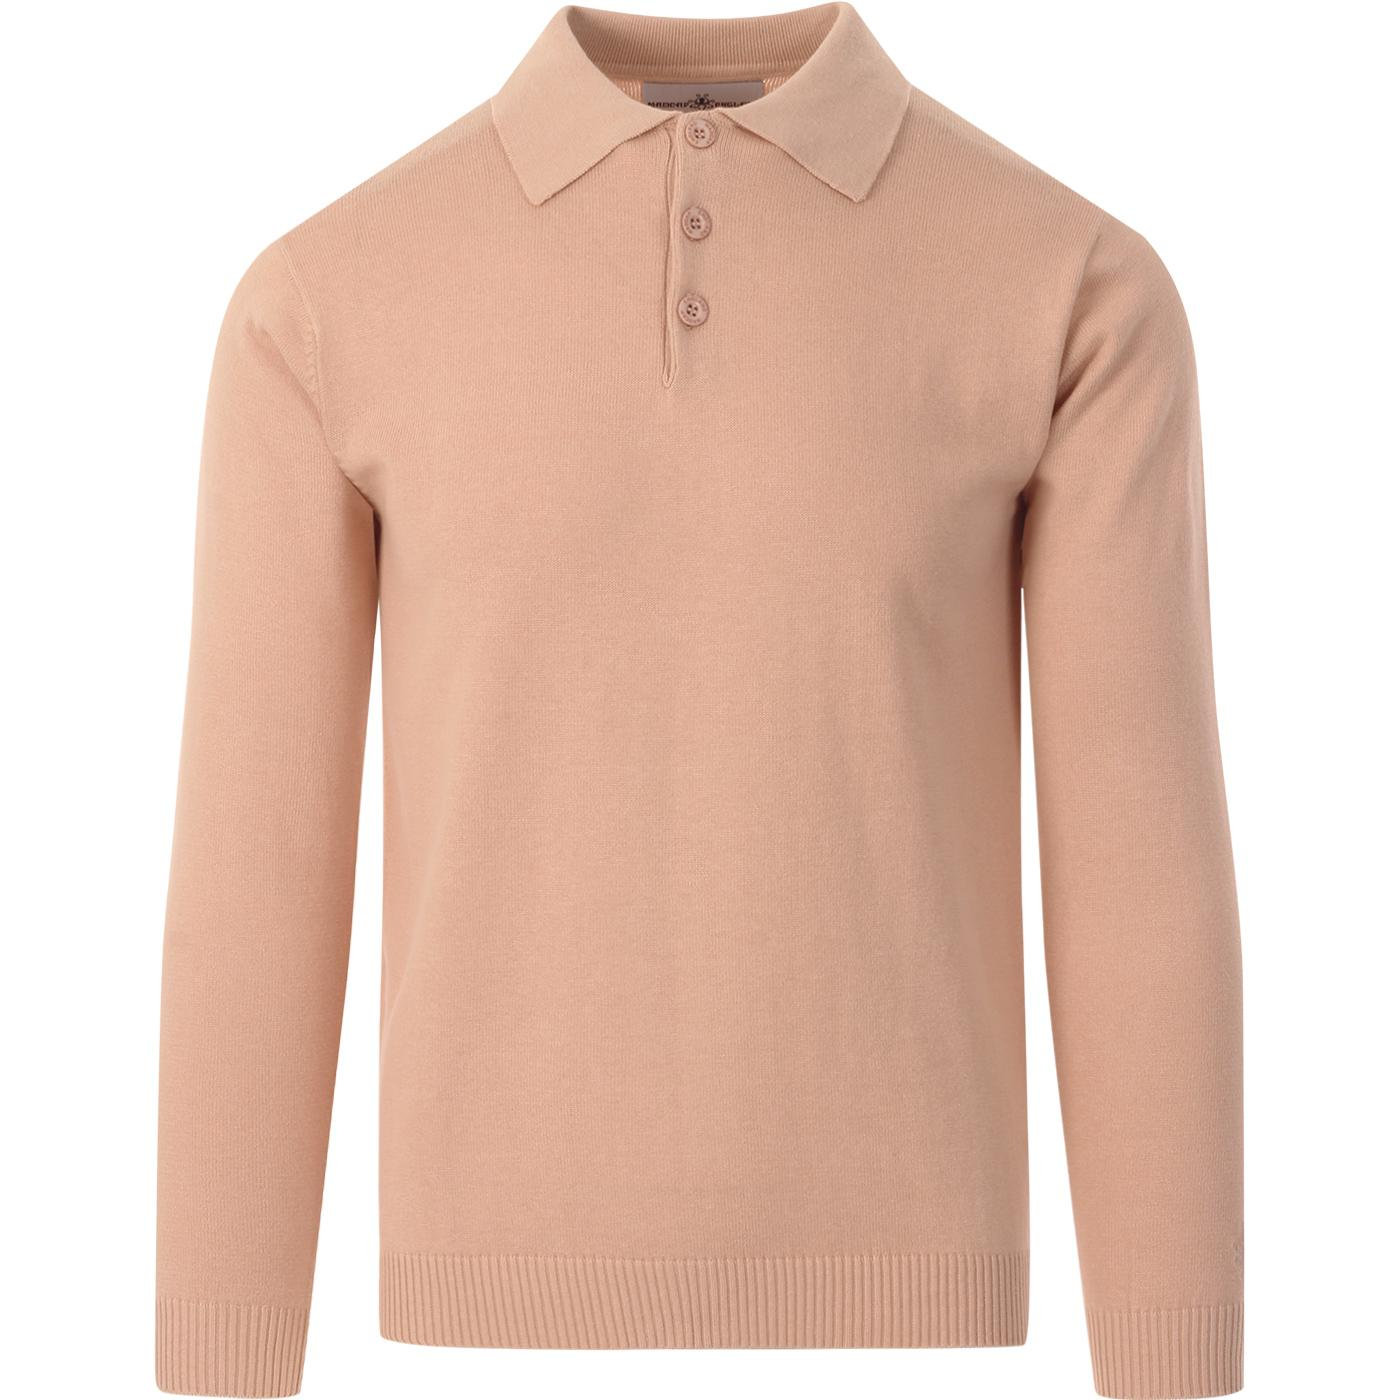 madcap england mens brando long sleeve knitted polo top toasted almond